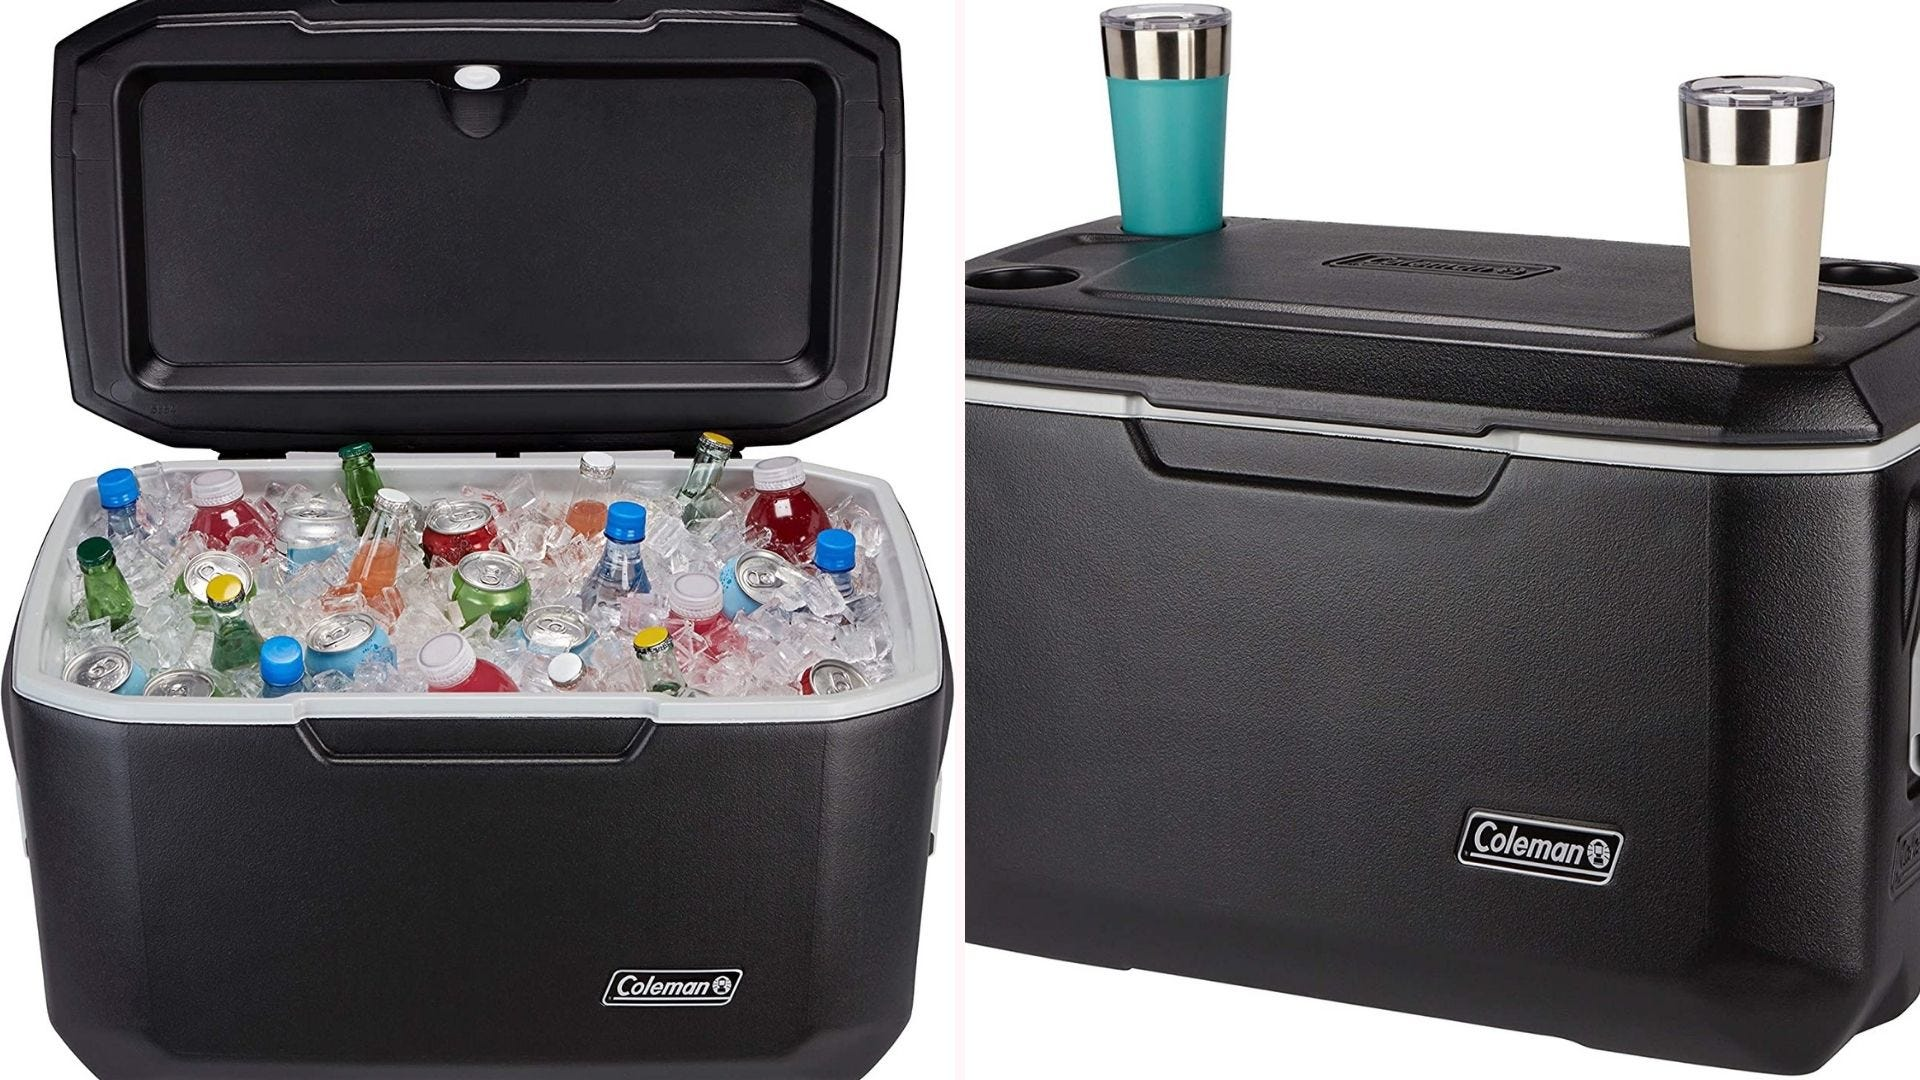 An open cooler filled with cans and ice; a closed cooler with two tumblers sitting on top